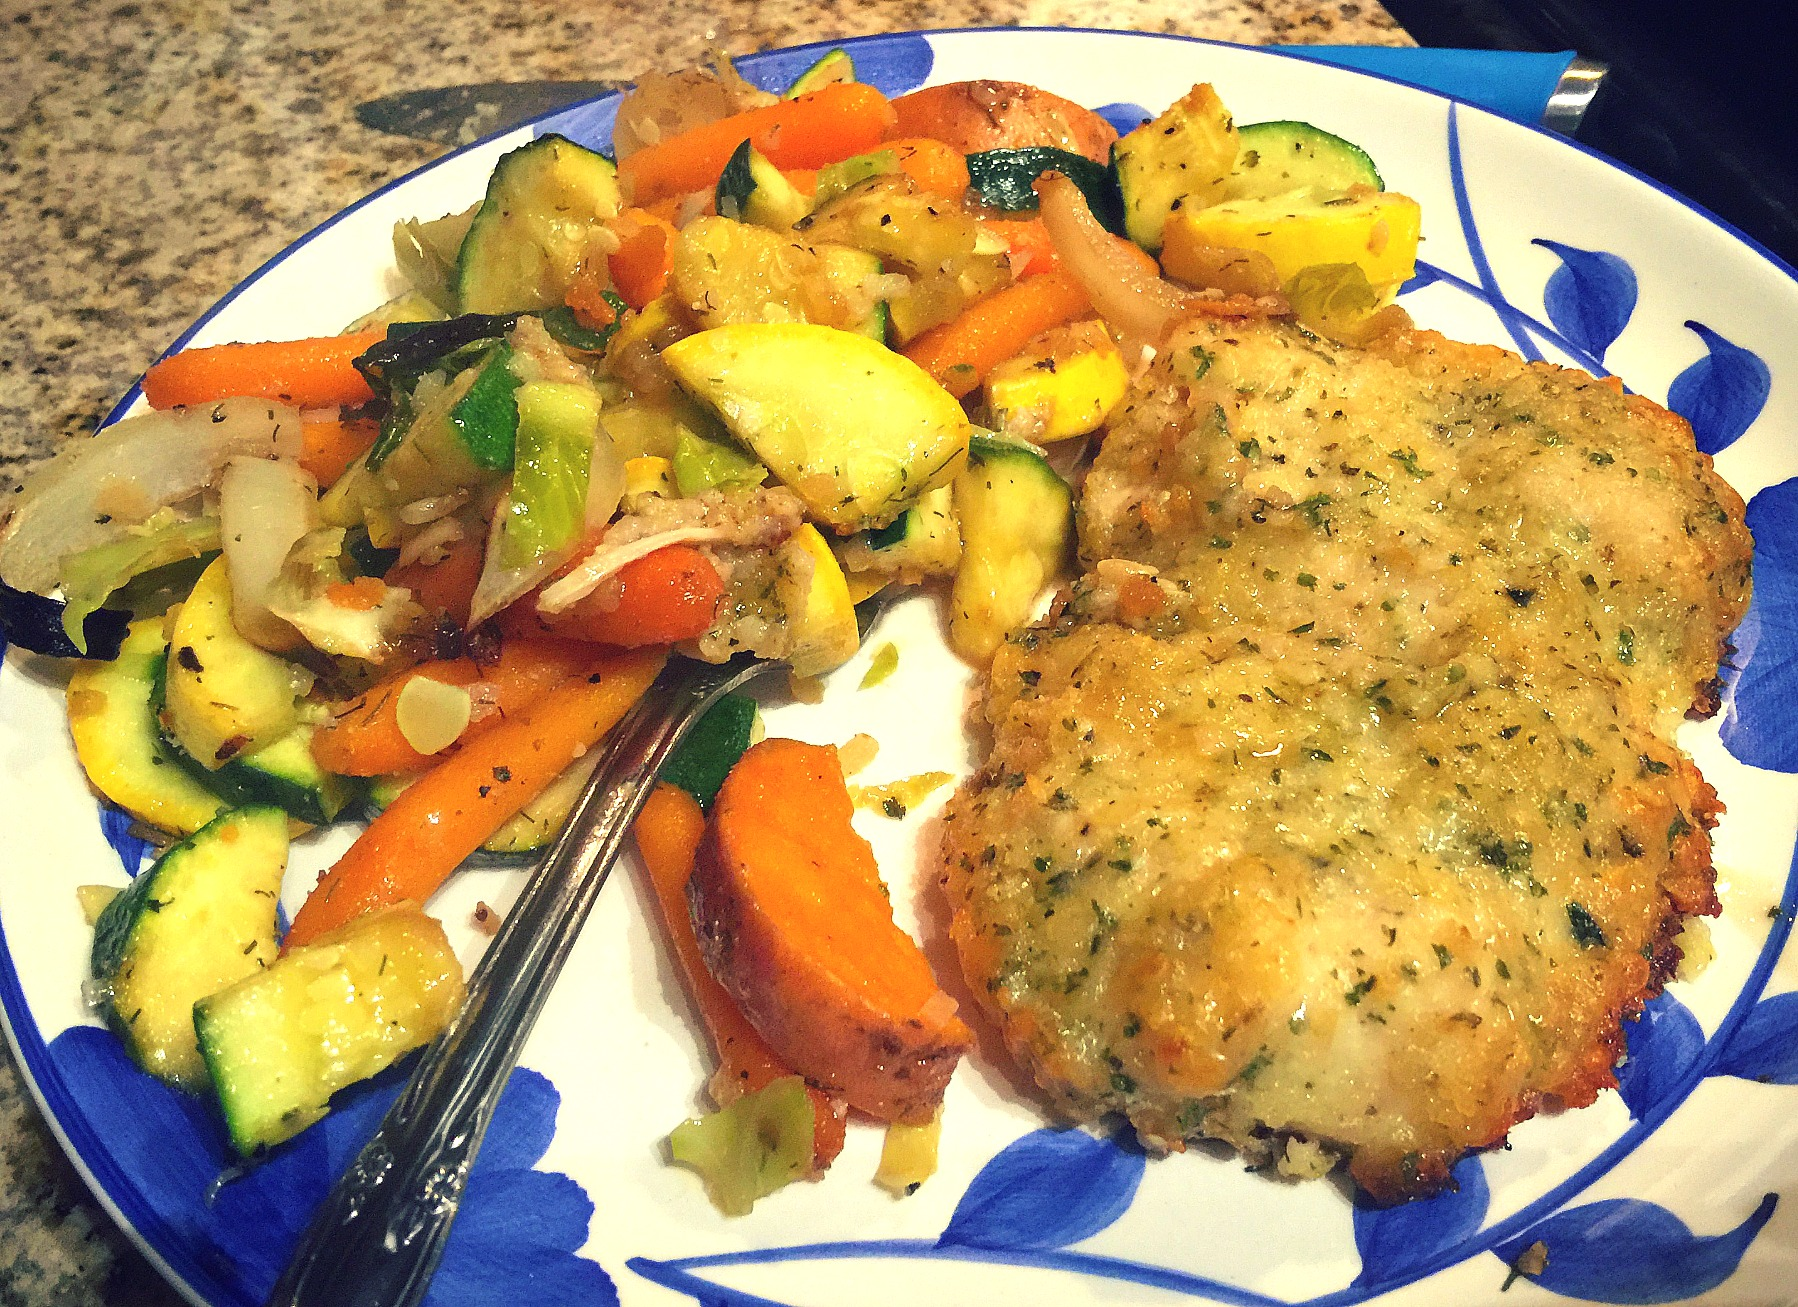 garlic parmesan crusted chicken and roasted vegetables